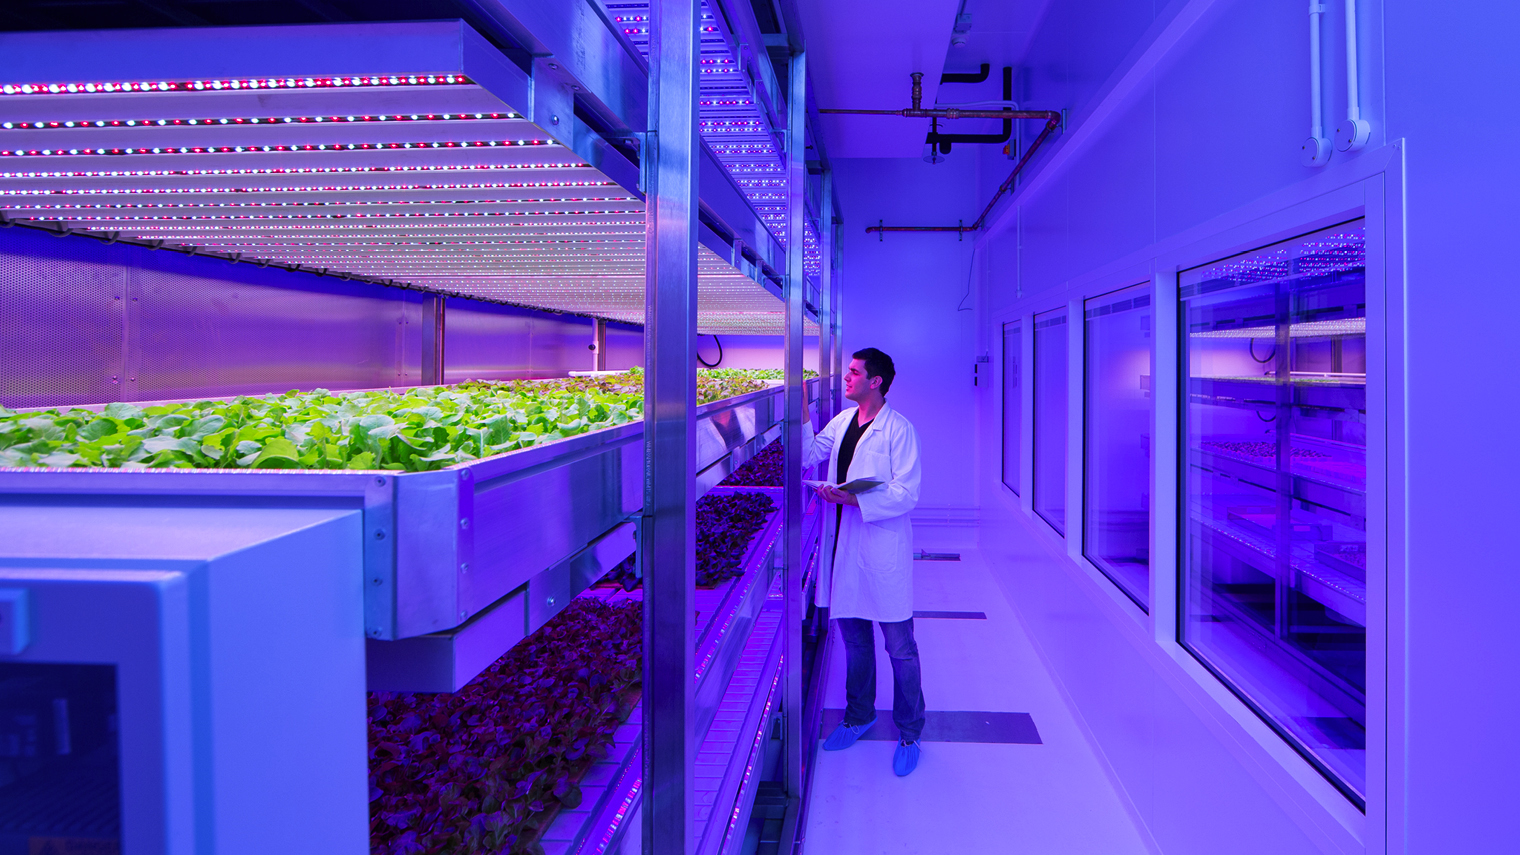 Food grown in lab with LED lights